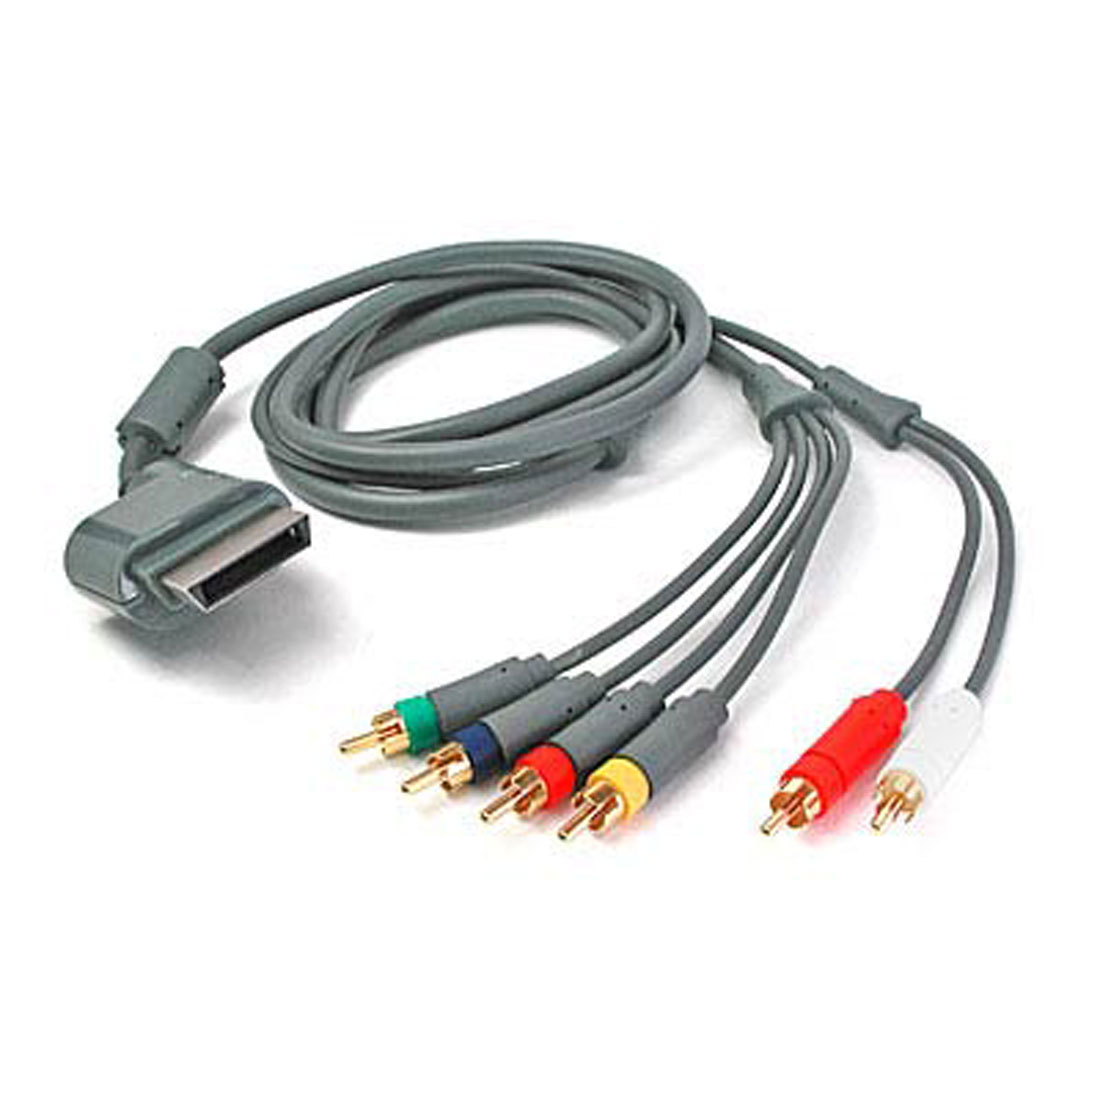 480p High-definition HD AV Video RGB Cable for XBox 360 Ioxfi